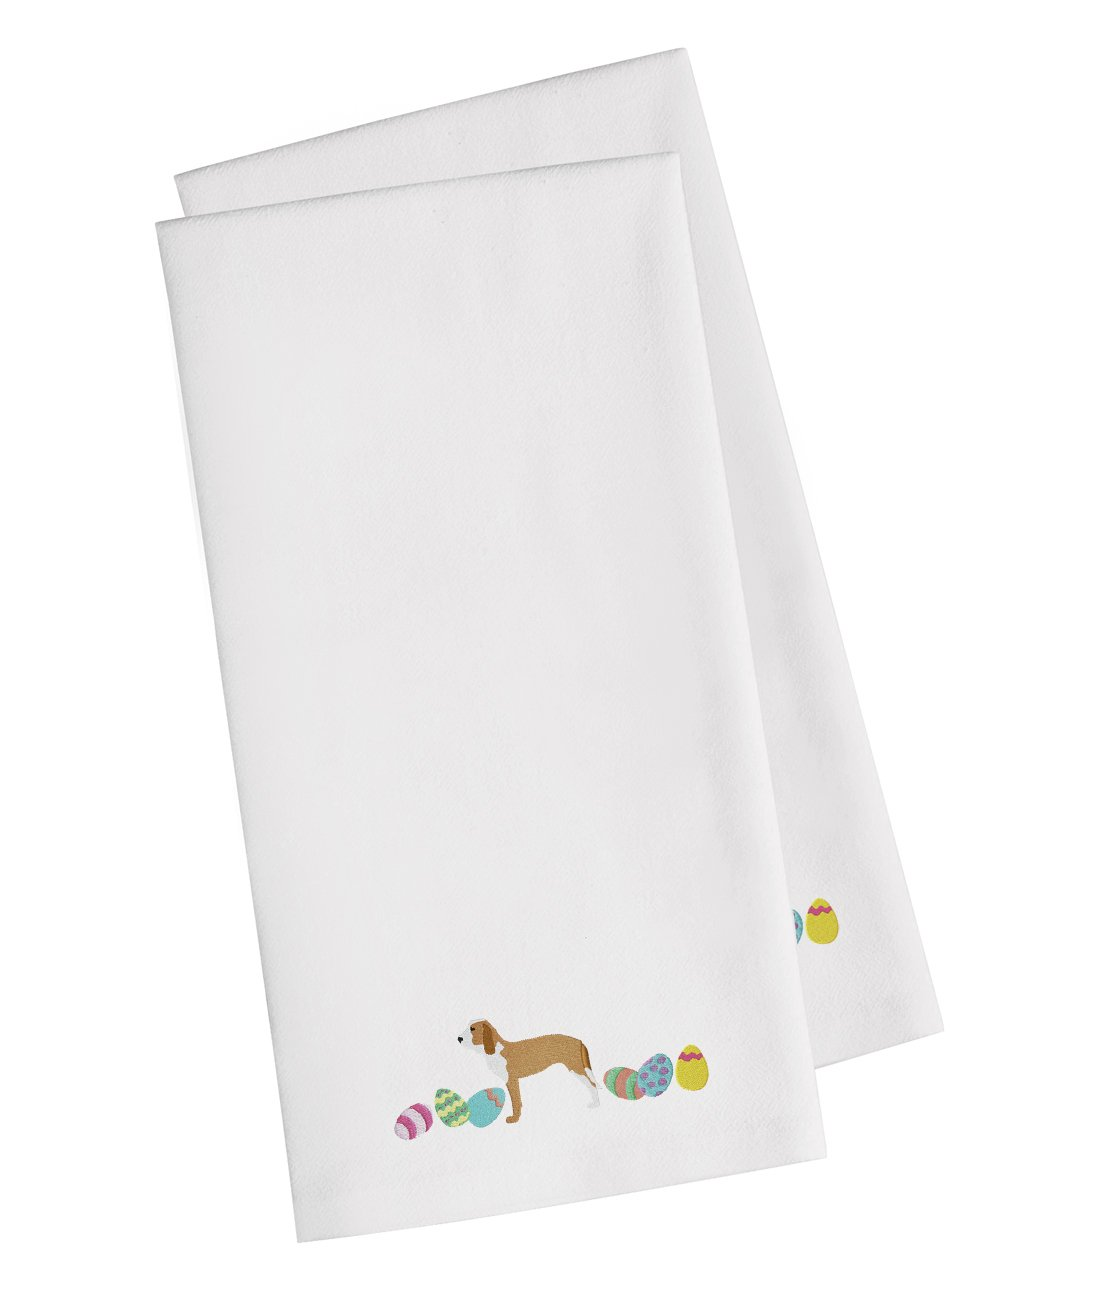 Sabueso Espanol Easter White Embroidered Kitchen Towel Set of 2 CK1688WHTWE by Caroline's Treasures